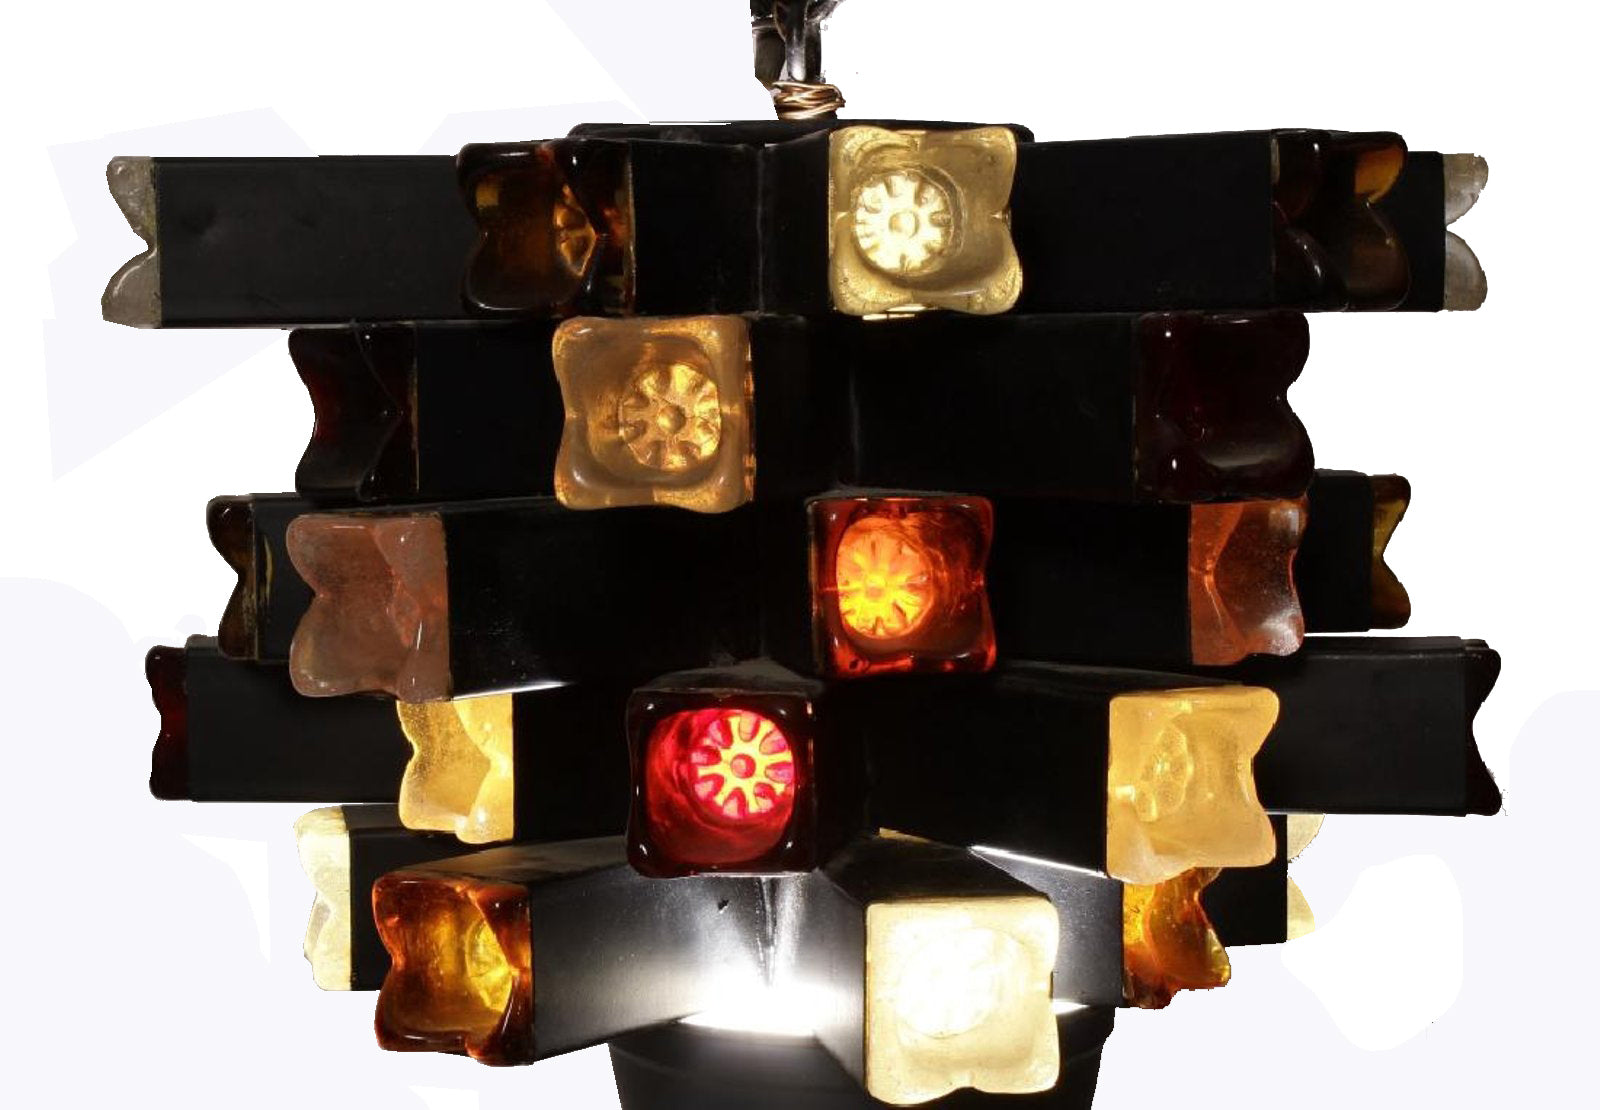 SOLD Brutalist Lamp by Feder of Mexico Late 1960s